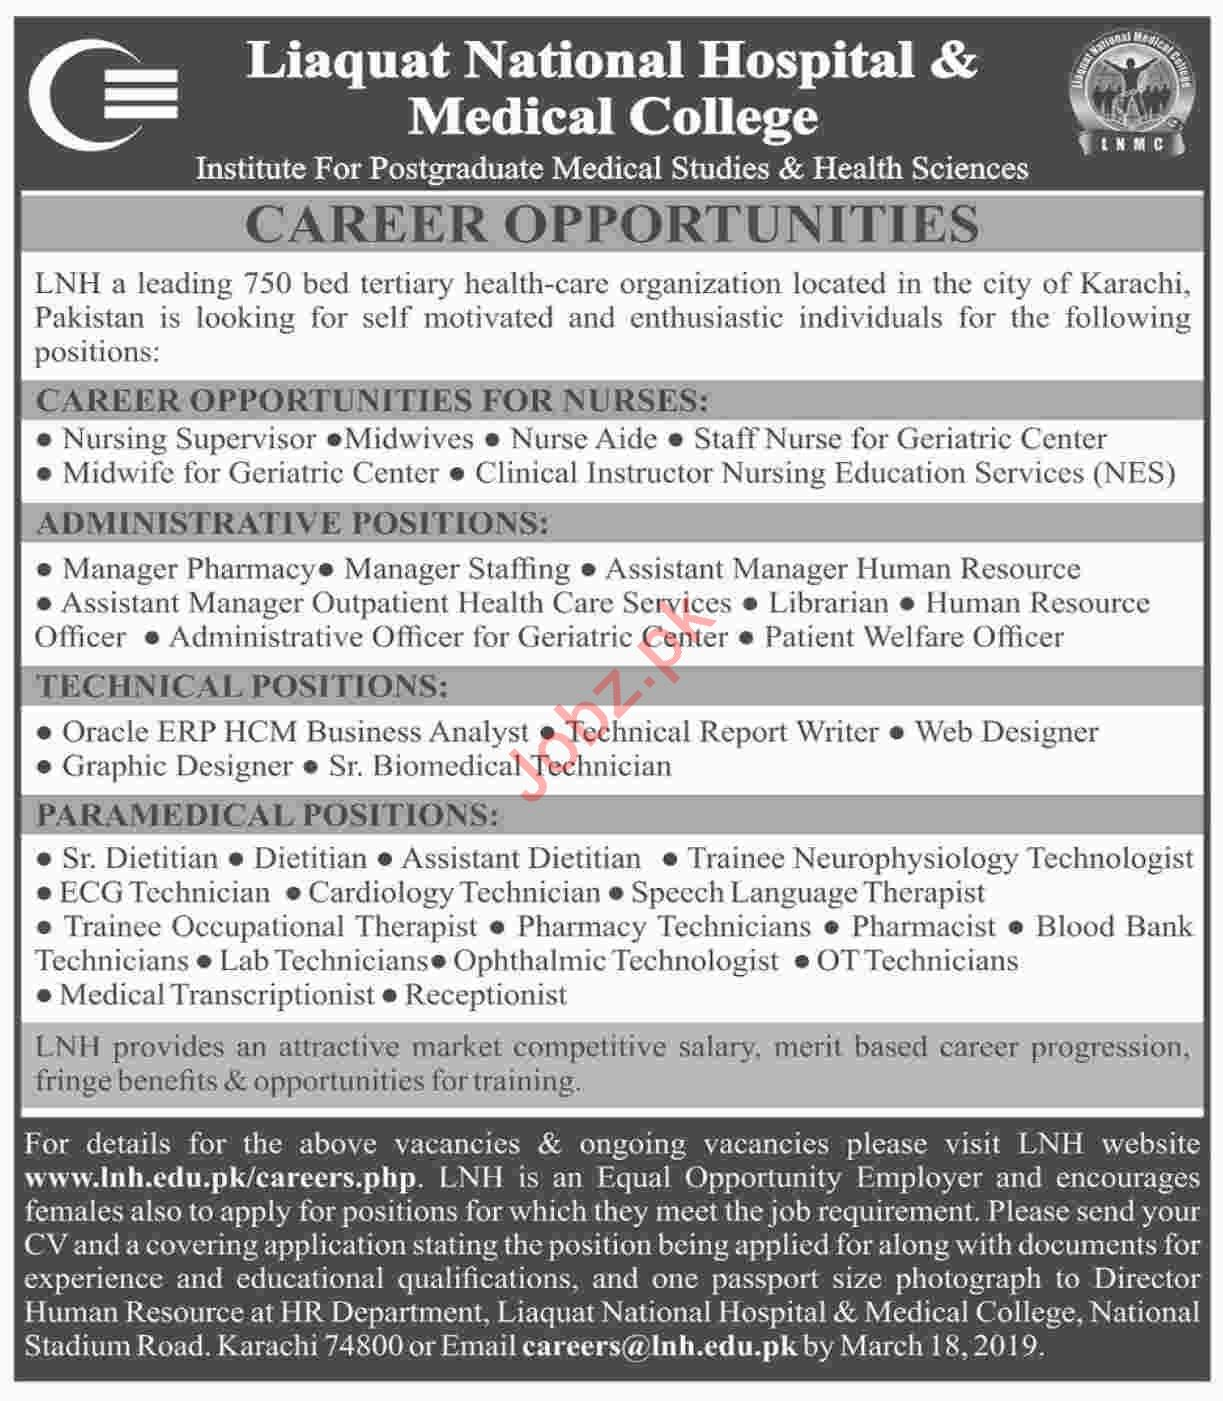 Liaquat National Hospital & Medical College Jobs 2019